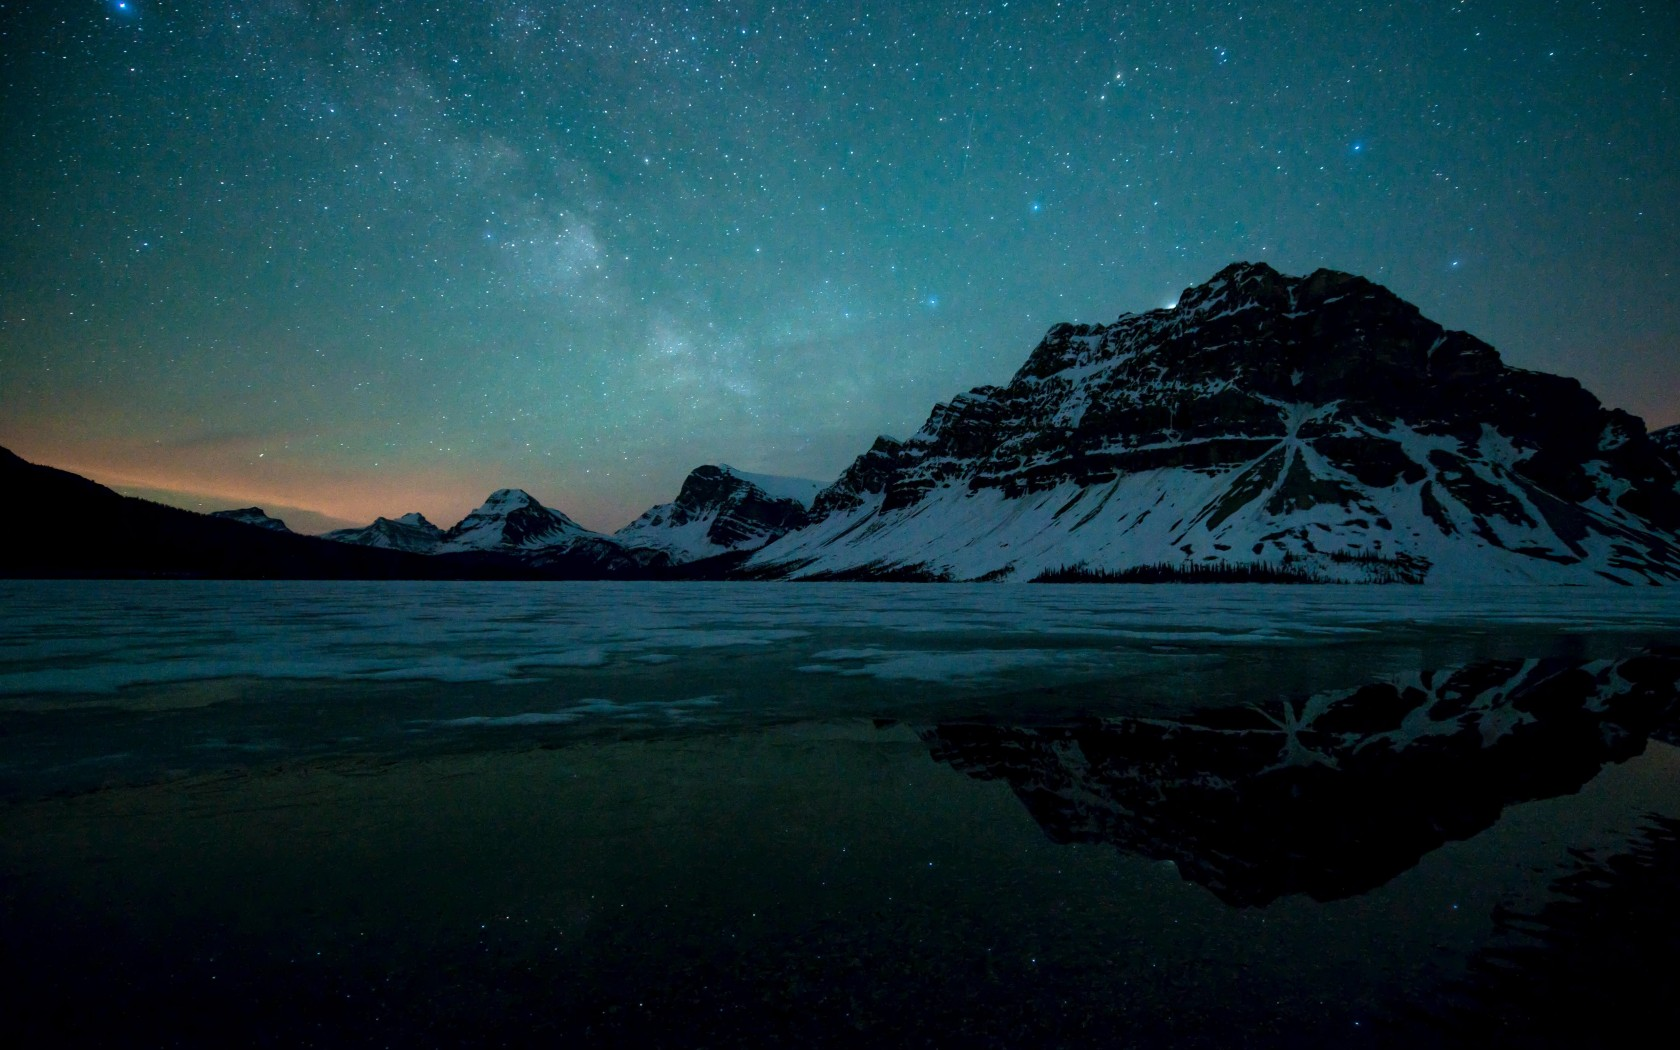 Milky Way over Bow Lake, Alberta, Canada Wallpaper for Desktop 1680x1050